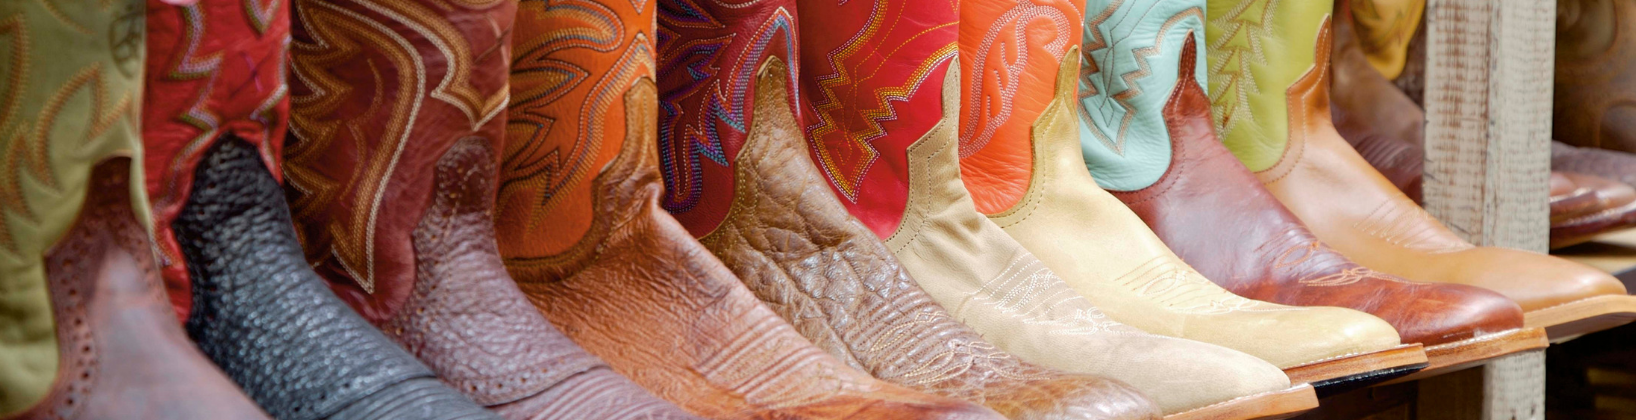 Colorful cowboy boots lined up on a shelf.